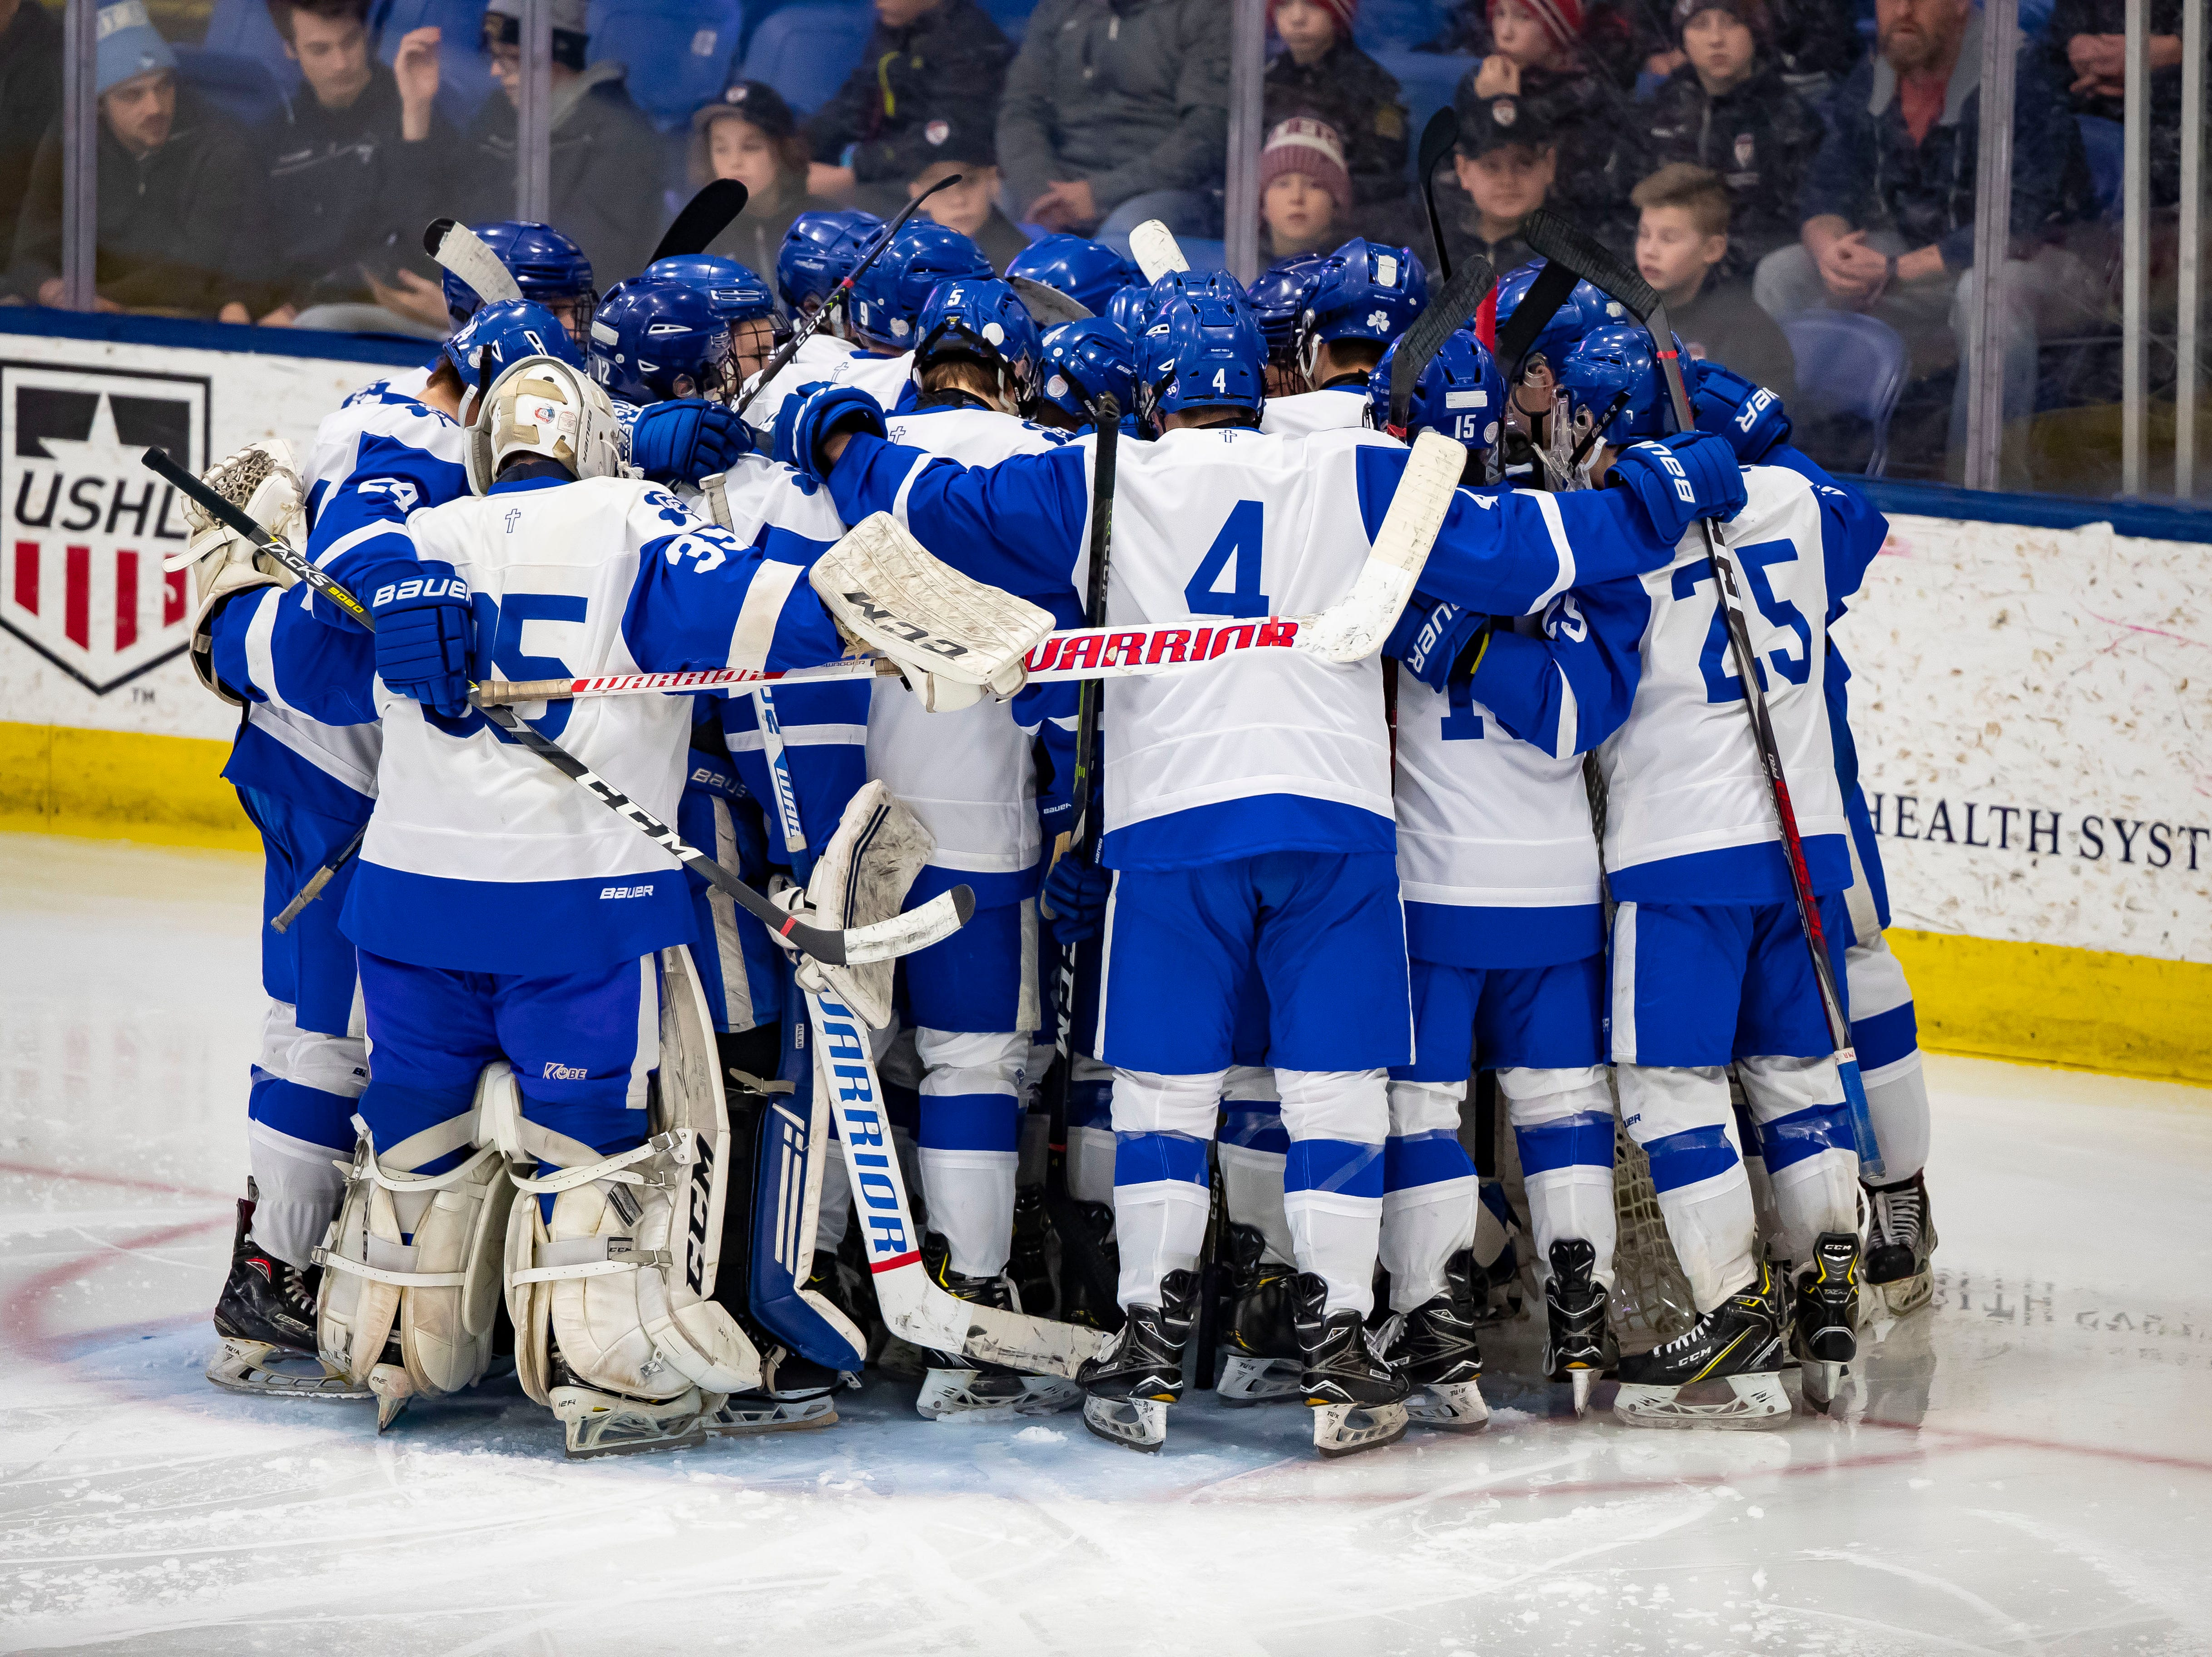 The Catholic Central players gather around the net before the start of the MHSAA Division 1 Finals.